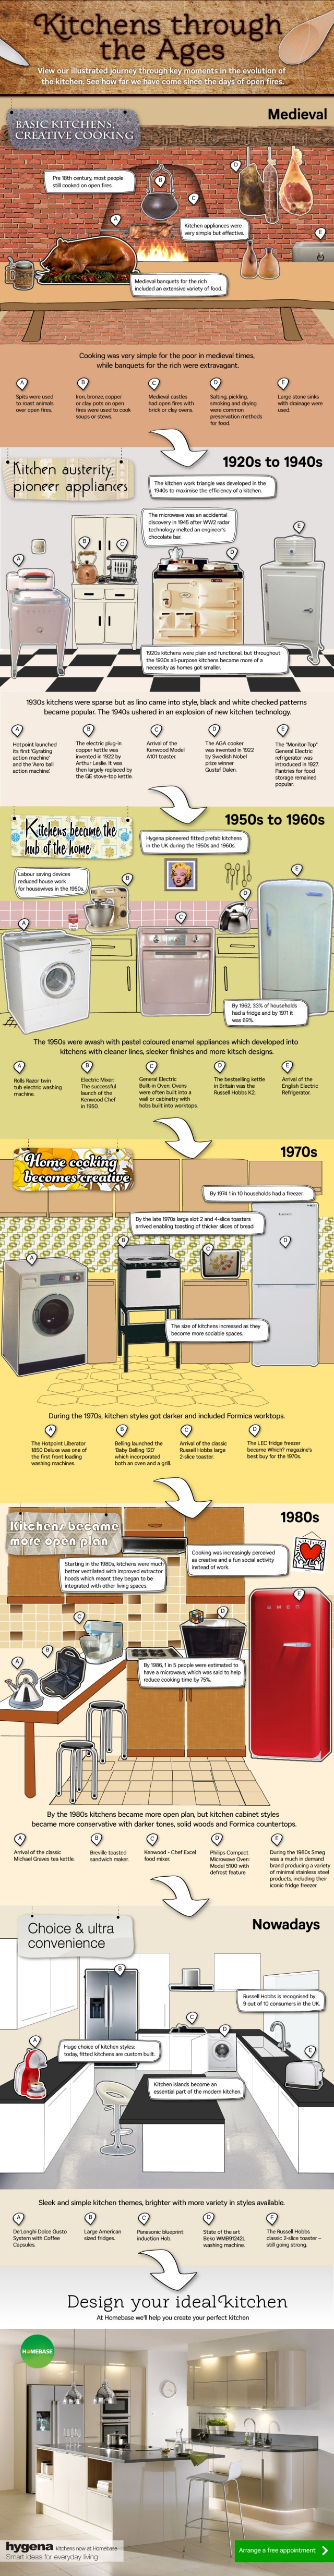 Kitchens_through_the_ages